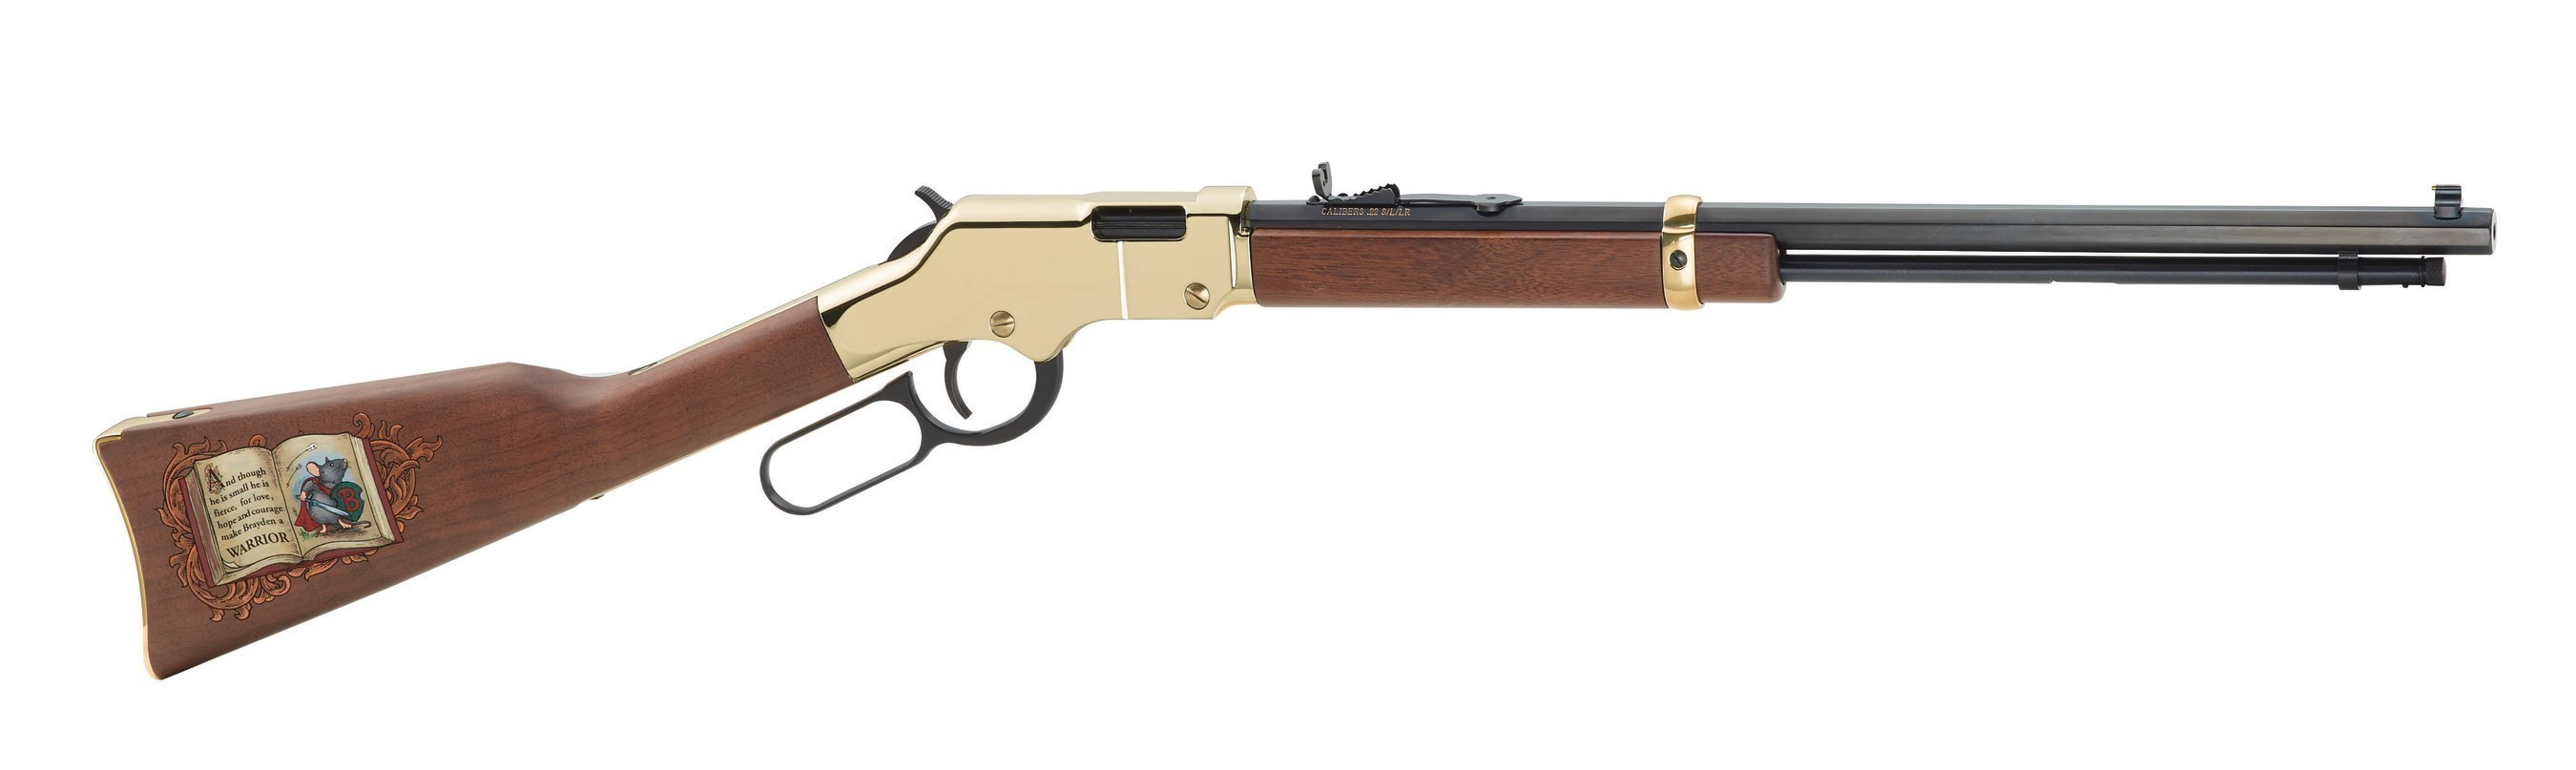 """SERIAL NUMBER """"BRAYDEN01"""" HENRY GOLDEN BOY IS FIRST OF 33 RIFLES CREATED TO HELP 2-YEAR-OLD INDIANA BOY NEEDING ORGAN TRANSPLANTS"""